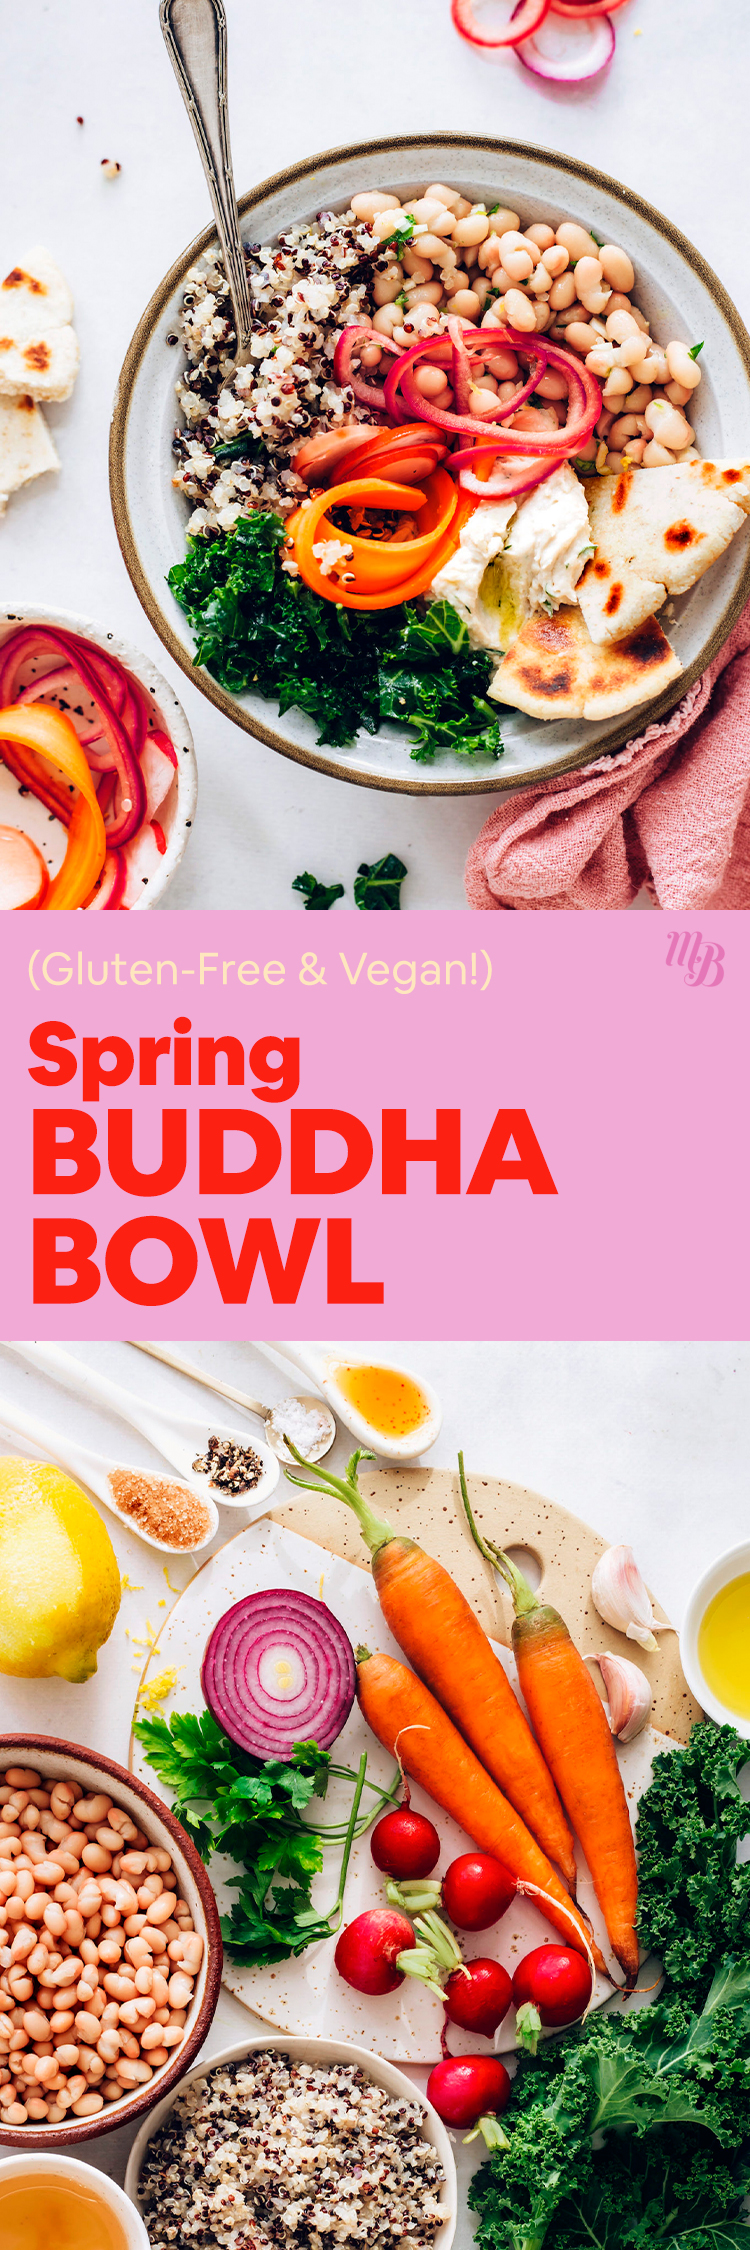 Ingredients and bowl with our spring Buddha bowl recipe